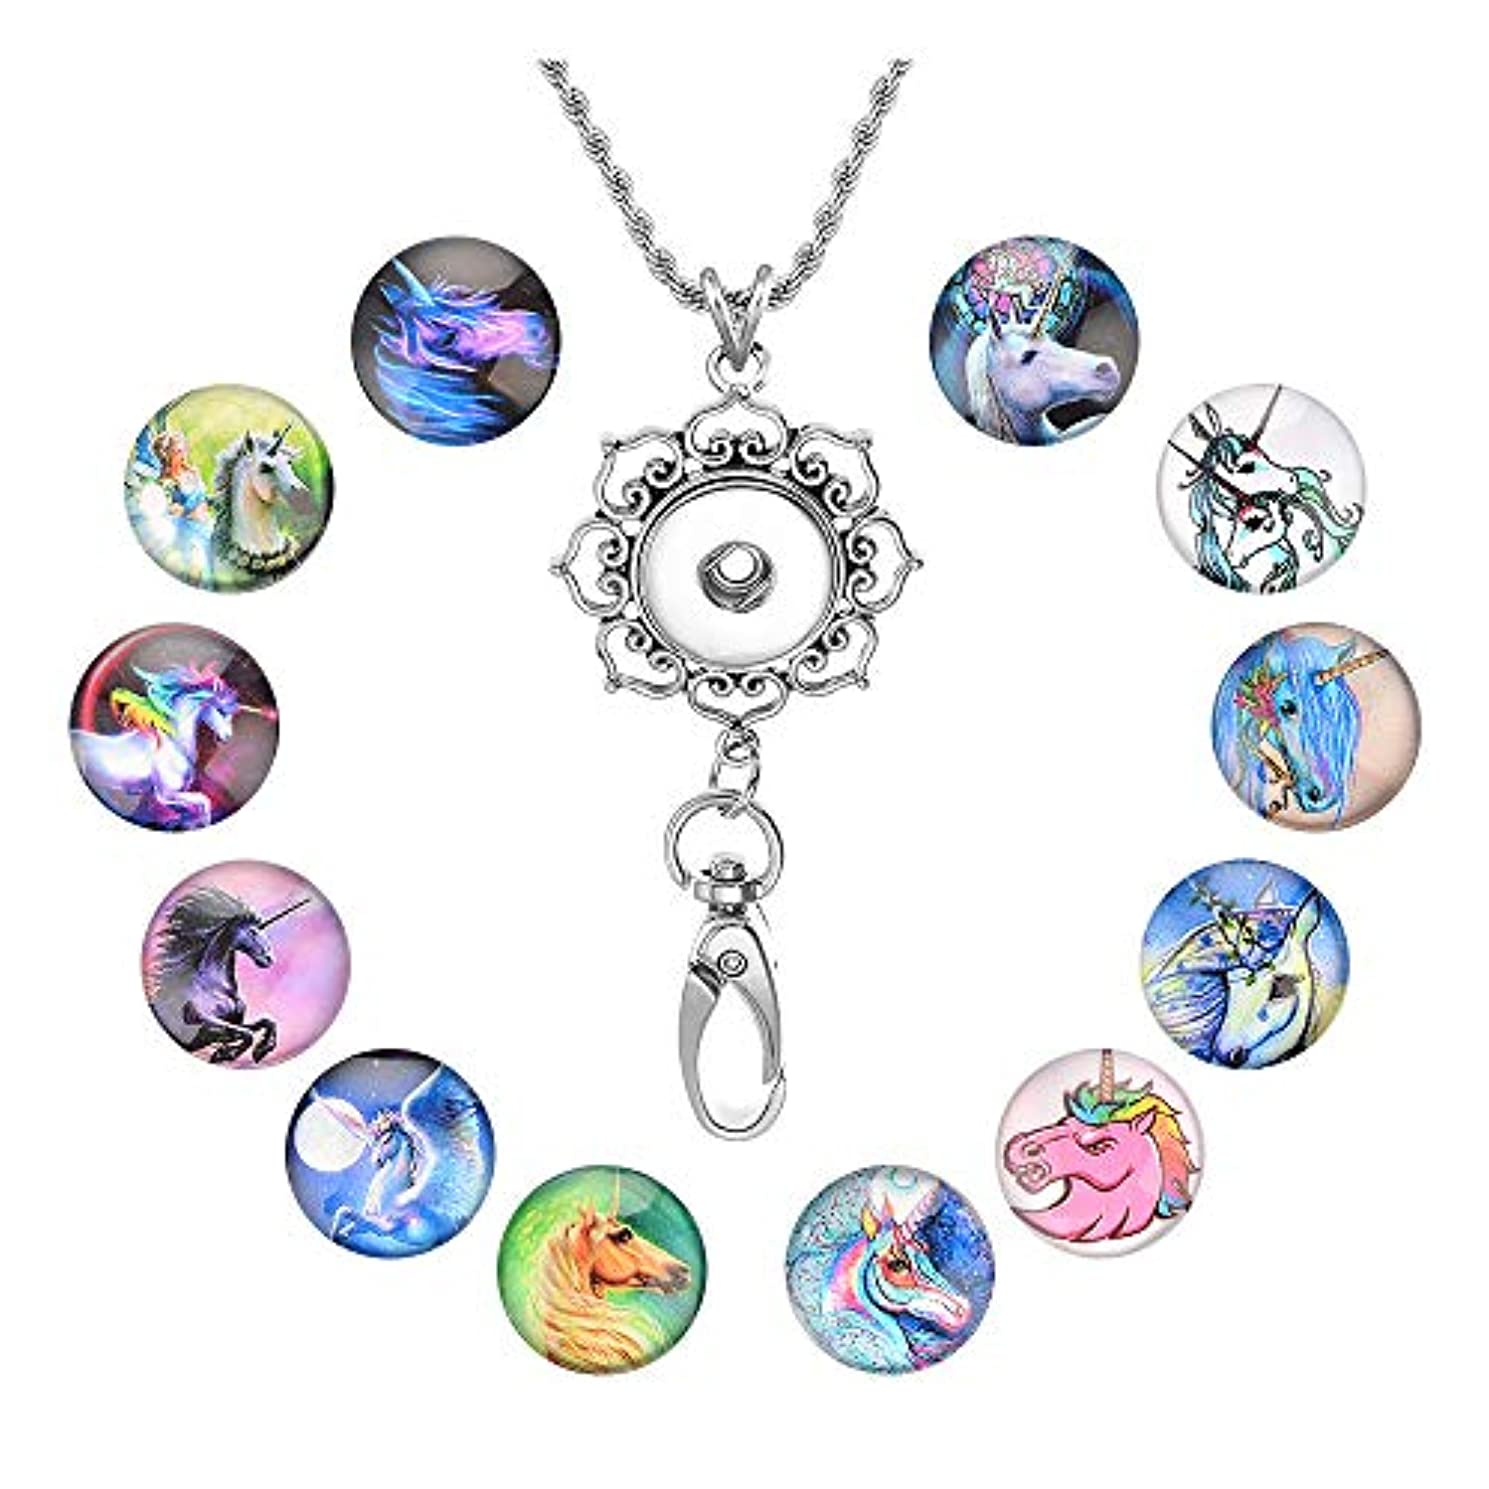 Souarts Womens Office Lanyard ID Badges Holder Necklace with 12pcs Horse Pattern Glass Snap Jewelry Charms Pendant Clip